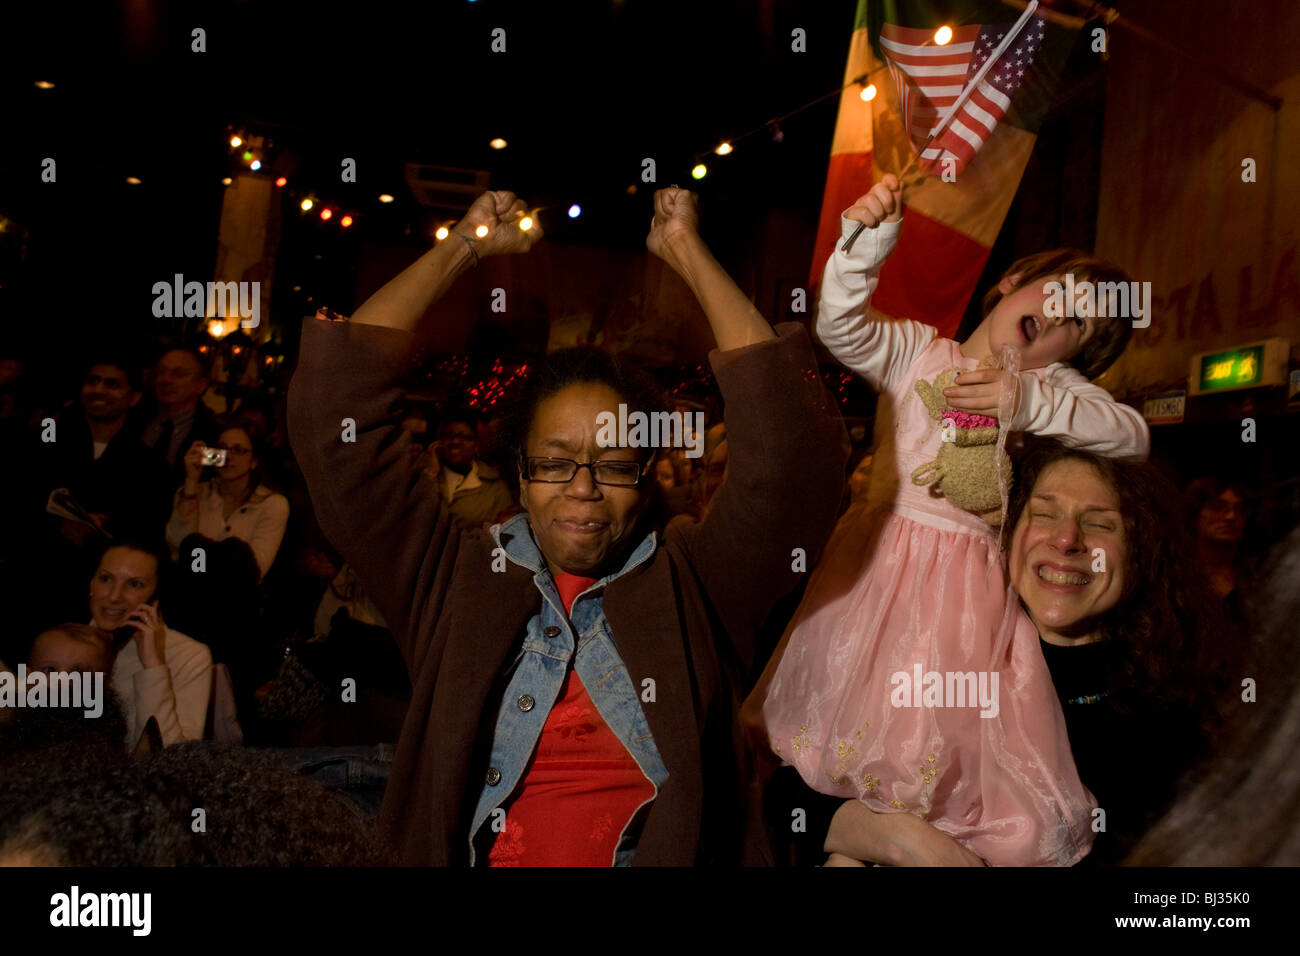 Elated US citizens celebrate at the very moment of Barack Obama's inauguration as the United States' 44th President. - Stock Image